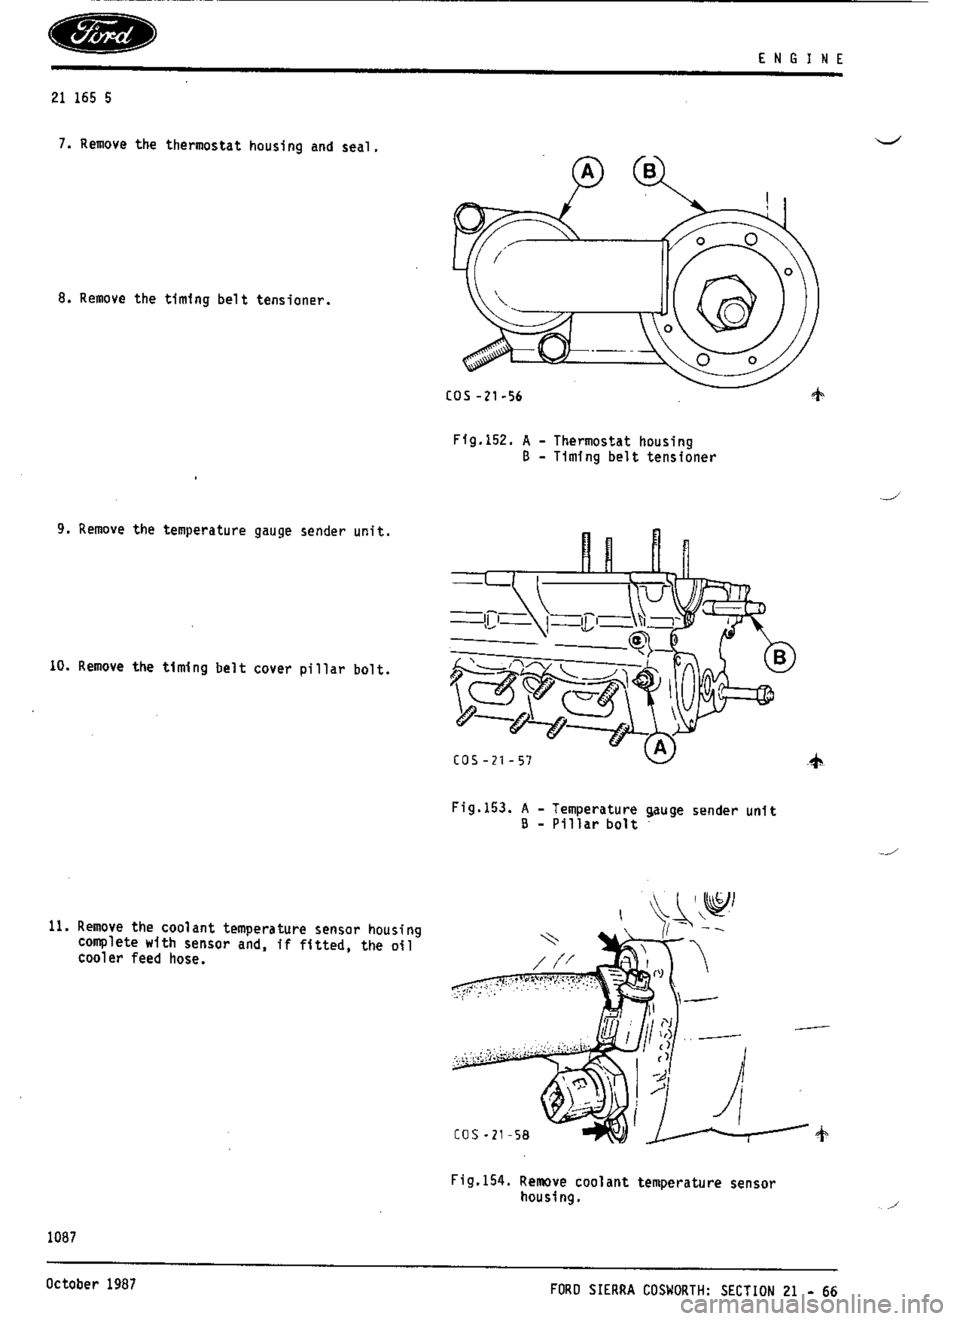 2000 oldsmobile bravada engine diagram html